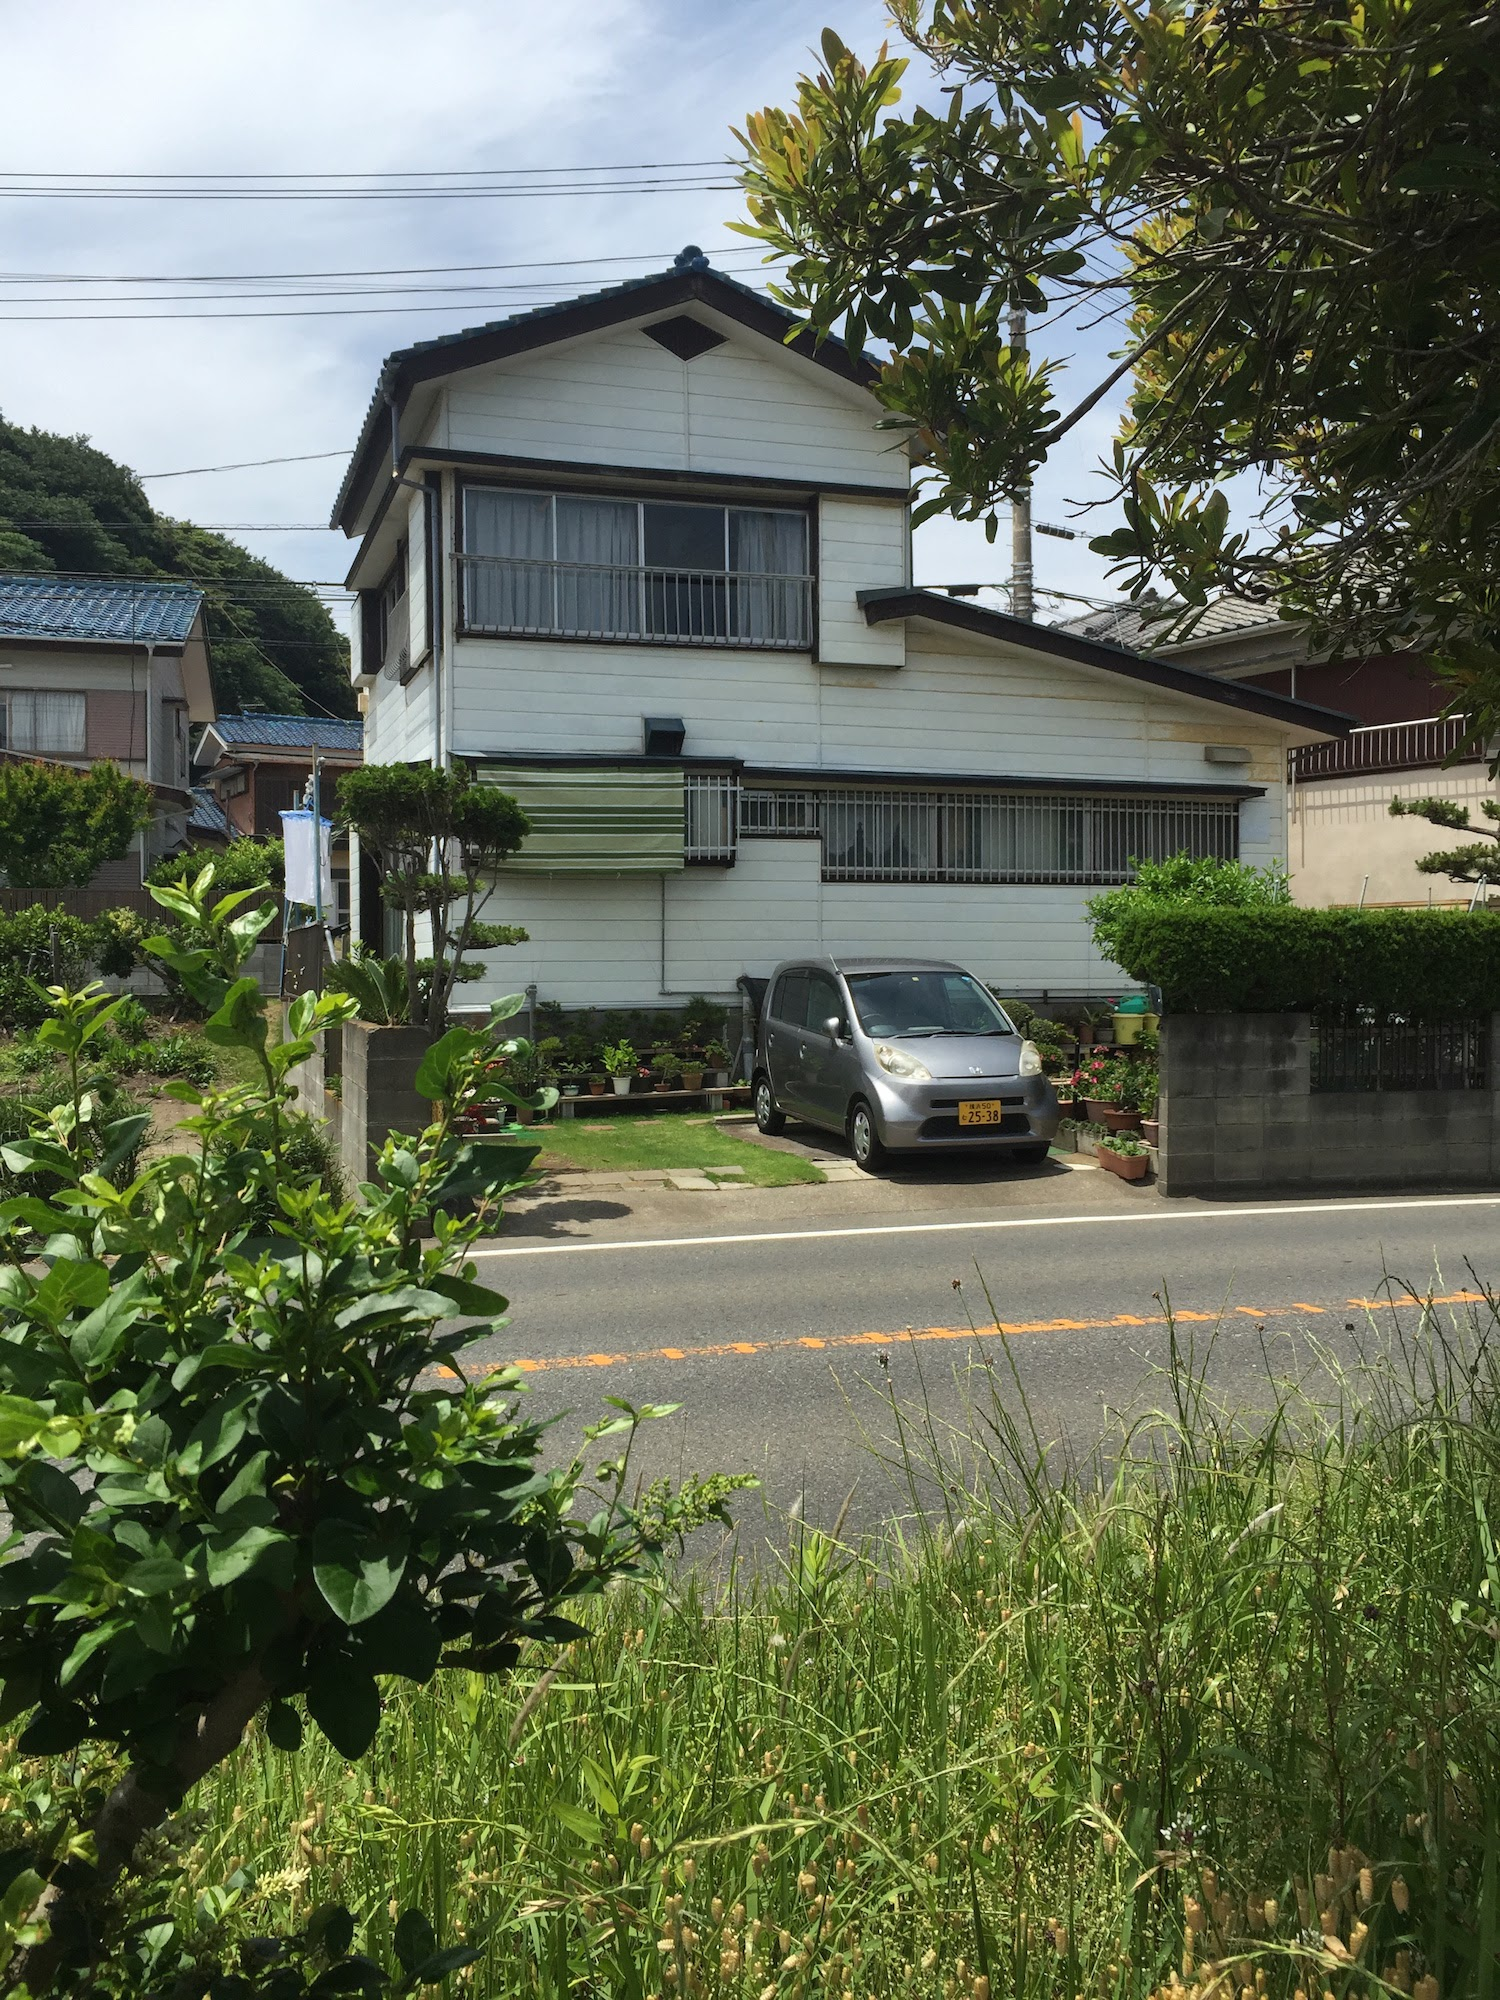 Japanese home w/ kei car out front